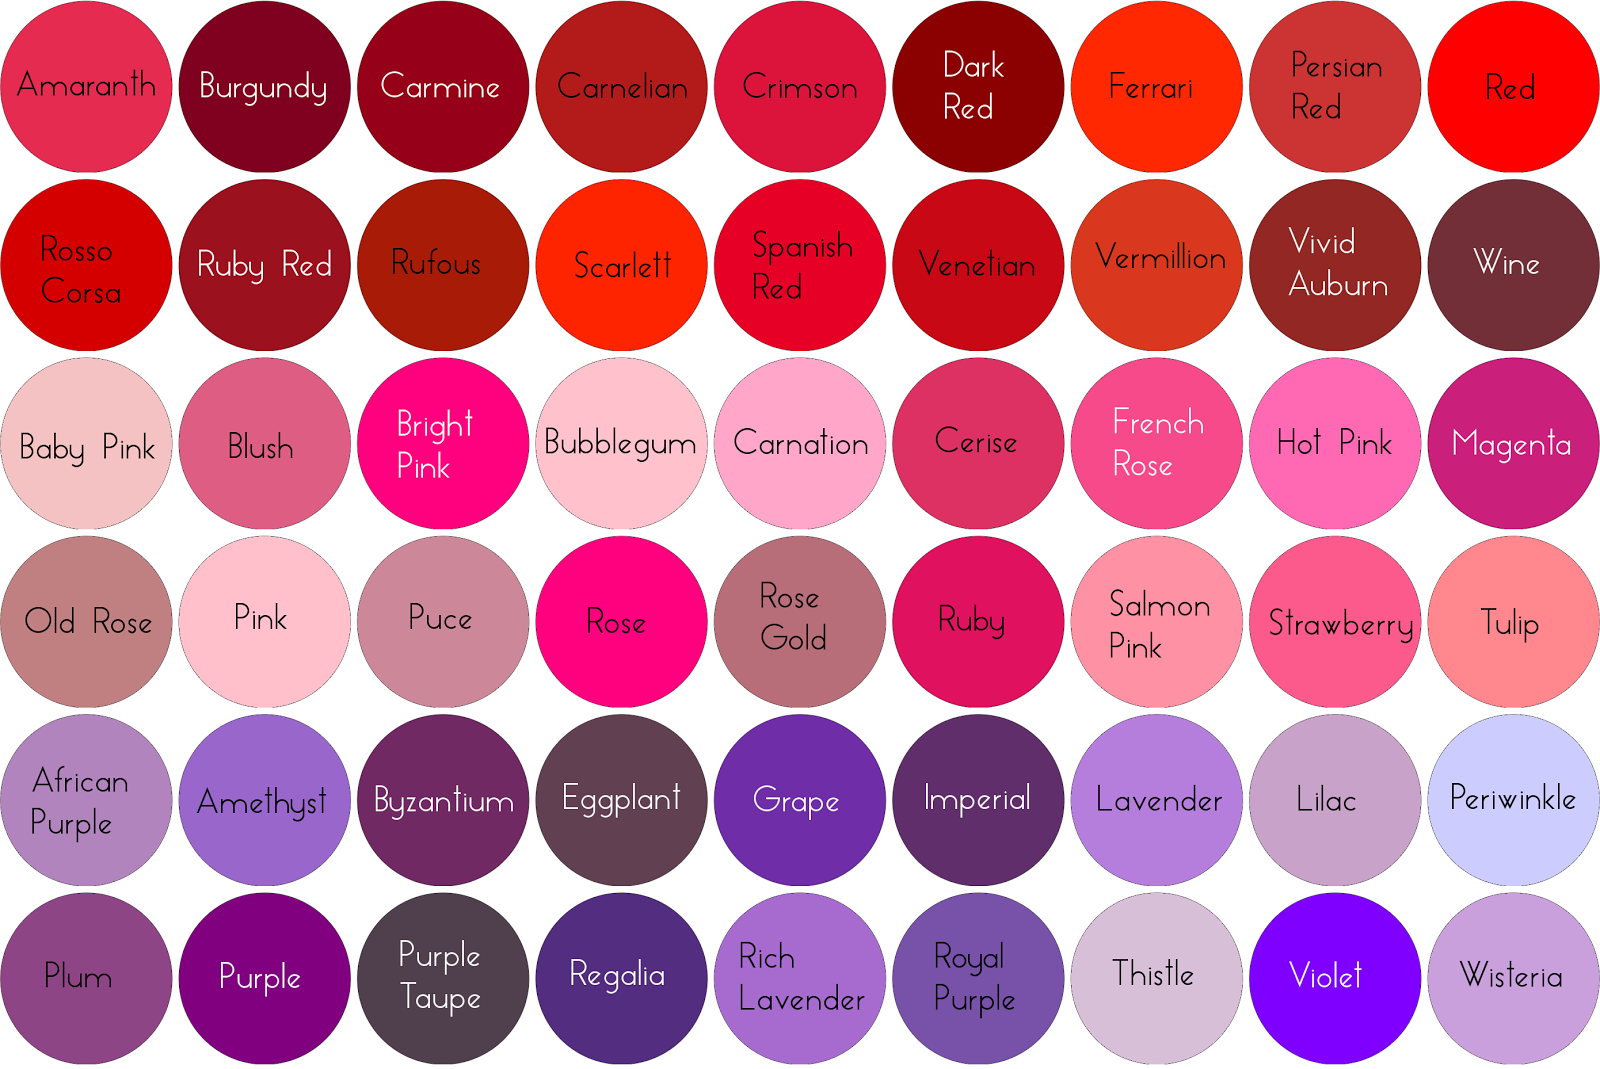 Diffe Shades Of Red Hair Color Names And Brun Card